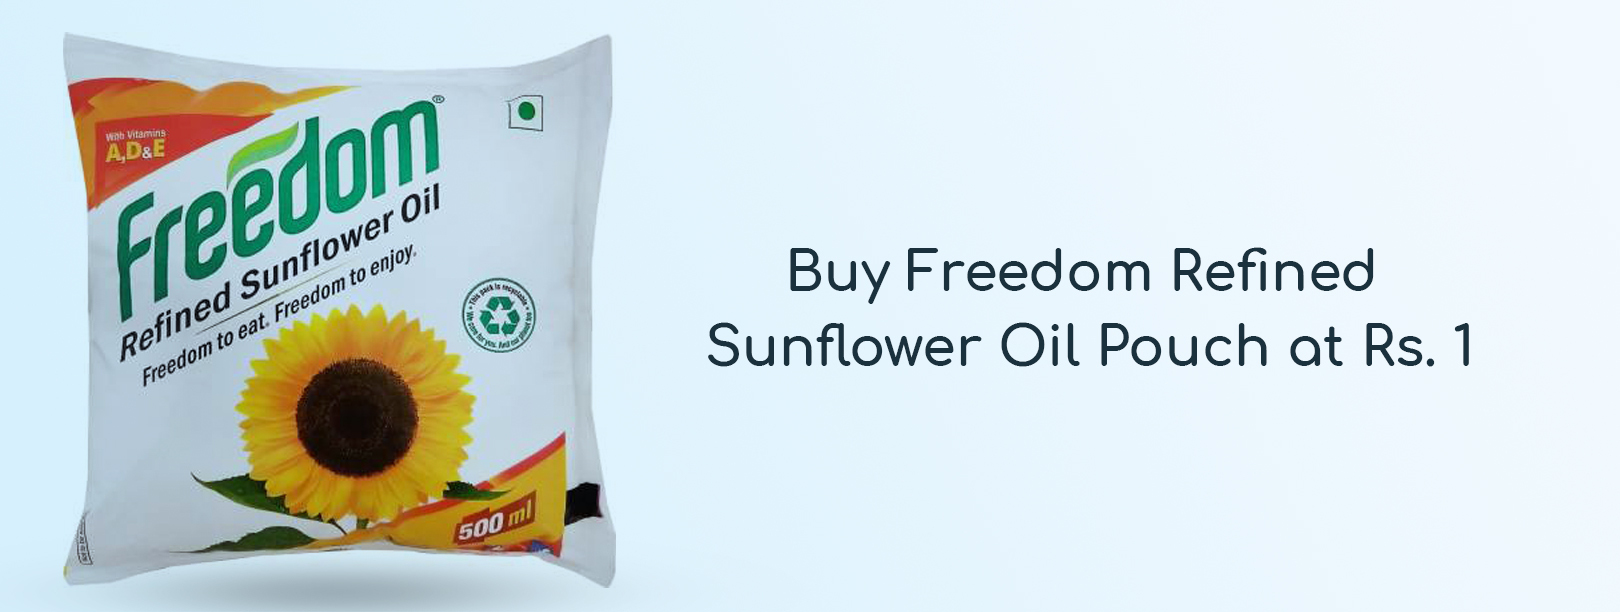 Freedom Refined Sunflower Oil Pouch